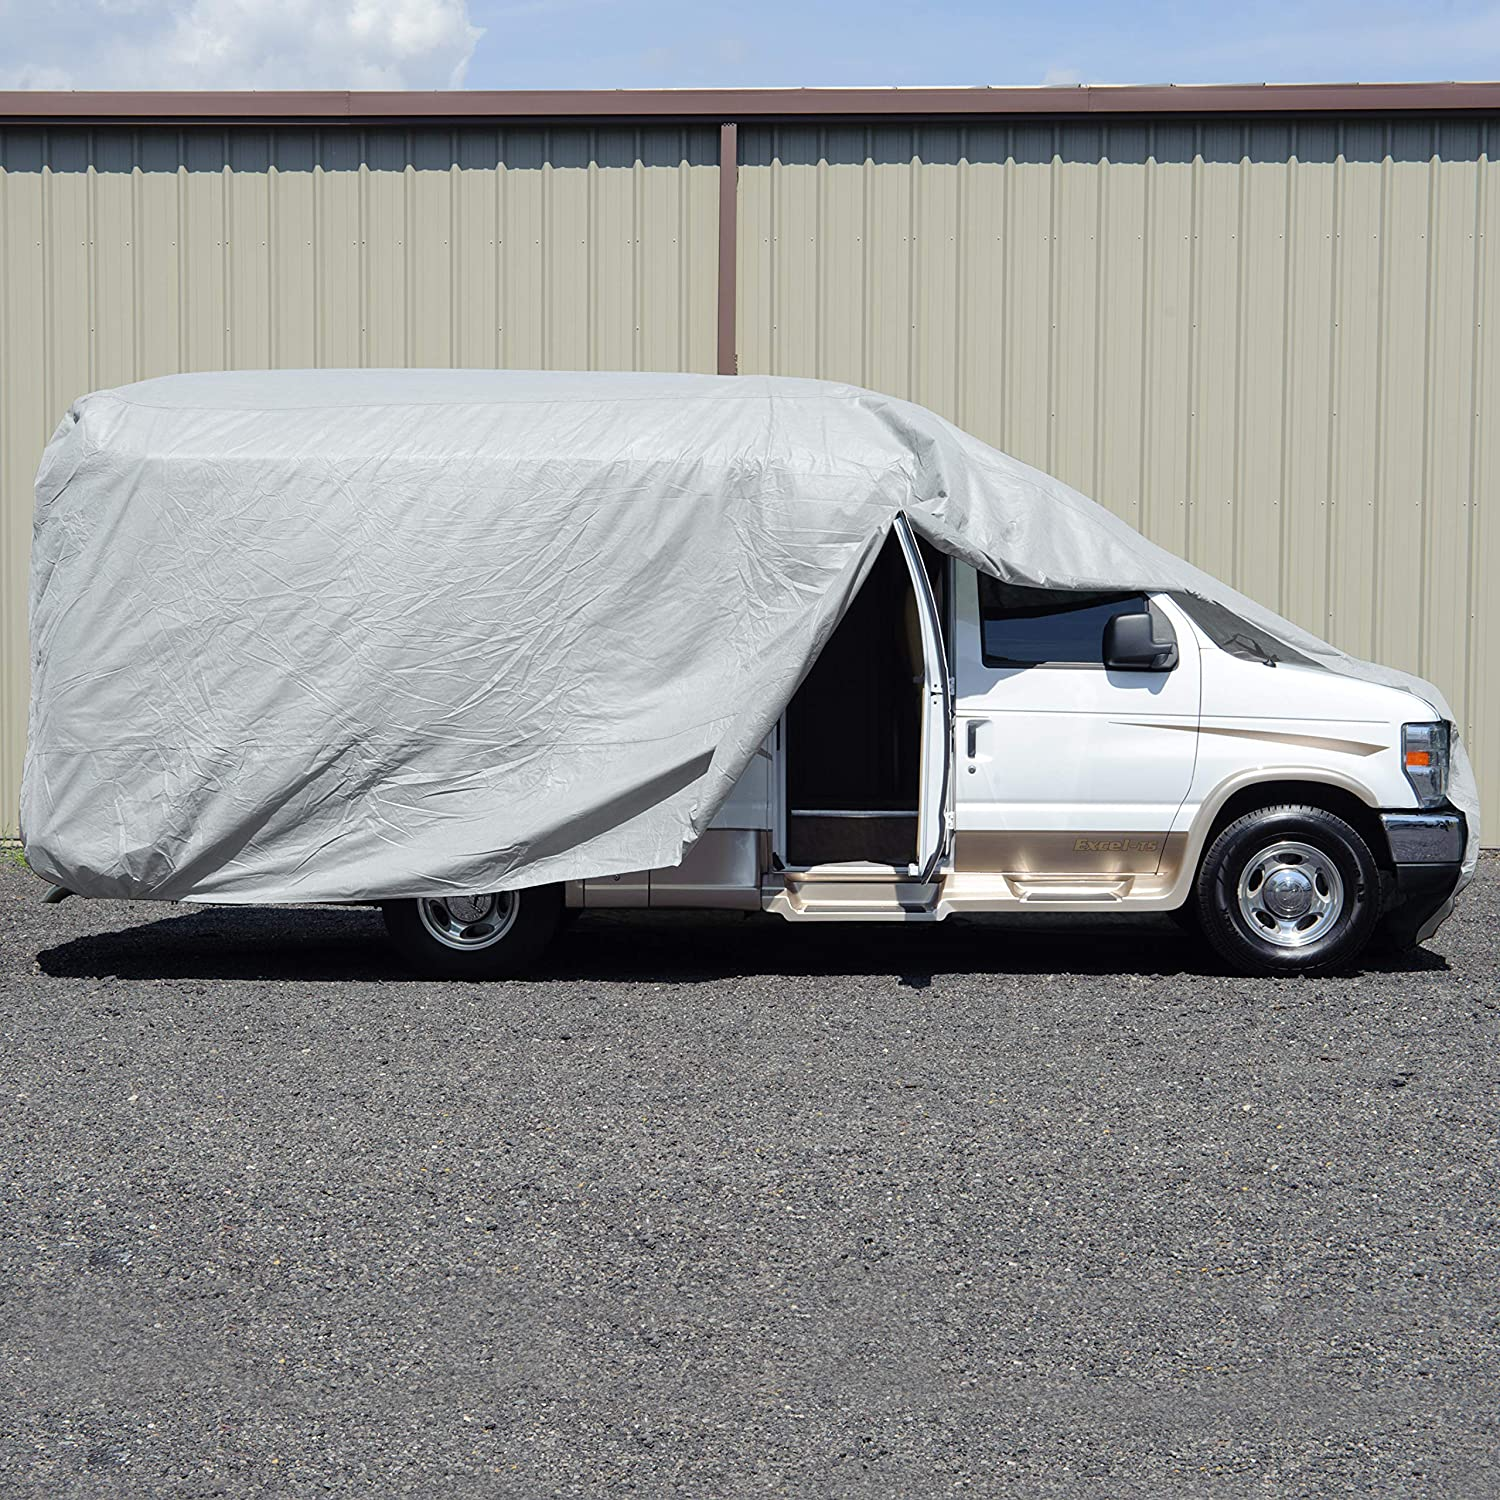 21.5-23 Long Size RVB-XL EmpireCovers Premier Breathable Waterproof Class B RV Cover